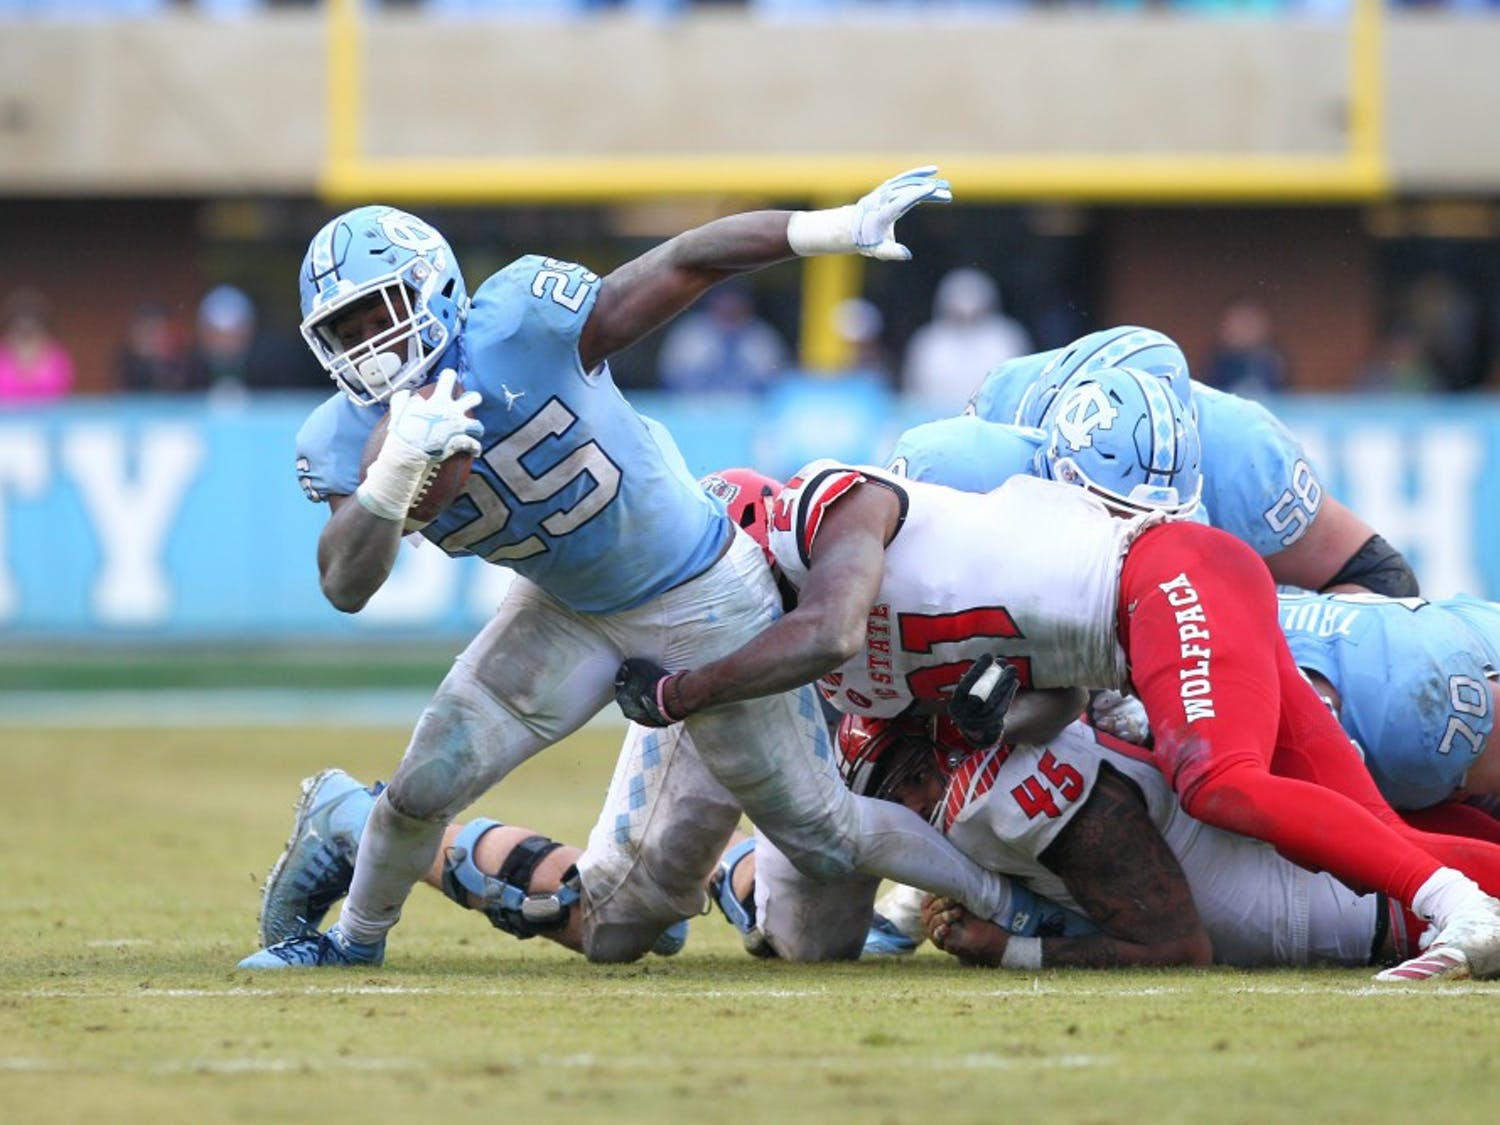 Running back Javonte Williams (25) tries to escape an NC State defender on Saturday, Nov. 24, 2018 in Kenan Memorial Stadium. NC State beat UNC 34-28 in overtime.